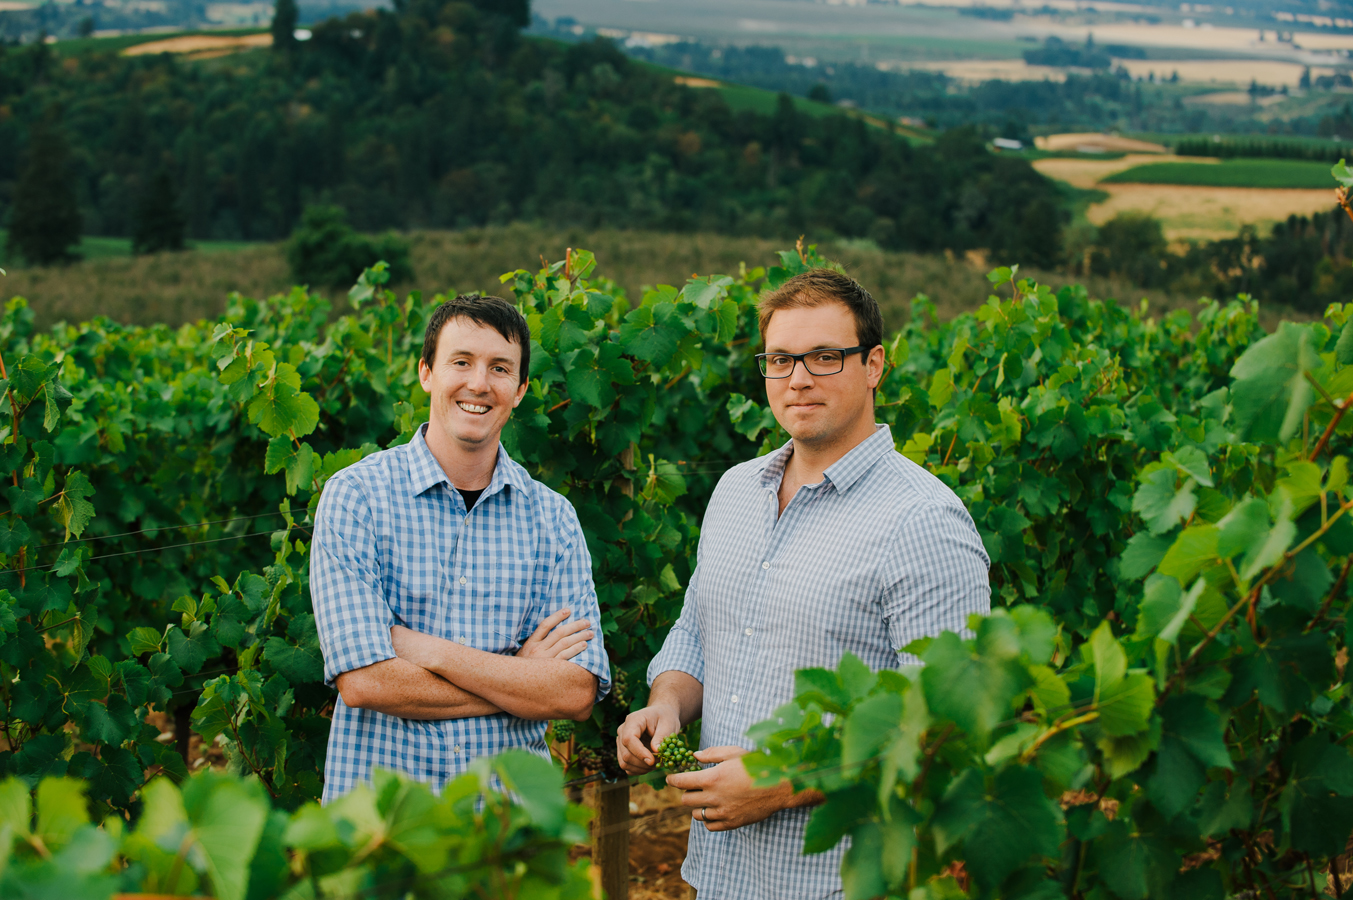 Geoffrey Hall, vineyard manager and Karl Weichold at Erath Winery, in Dundee, Oregon